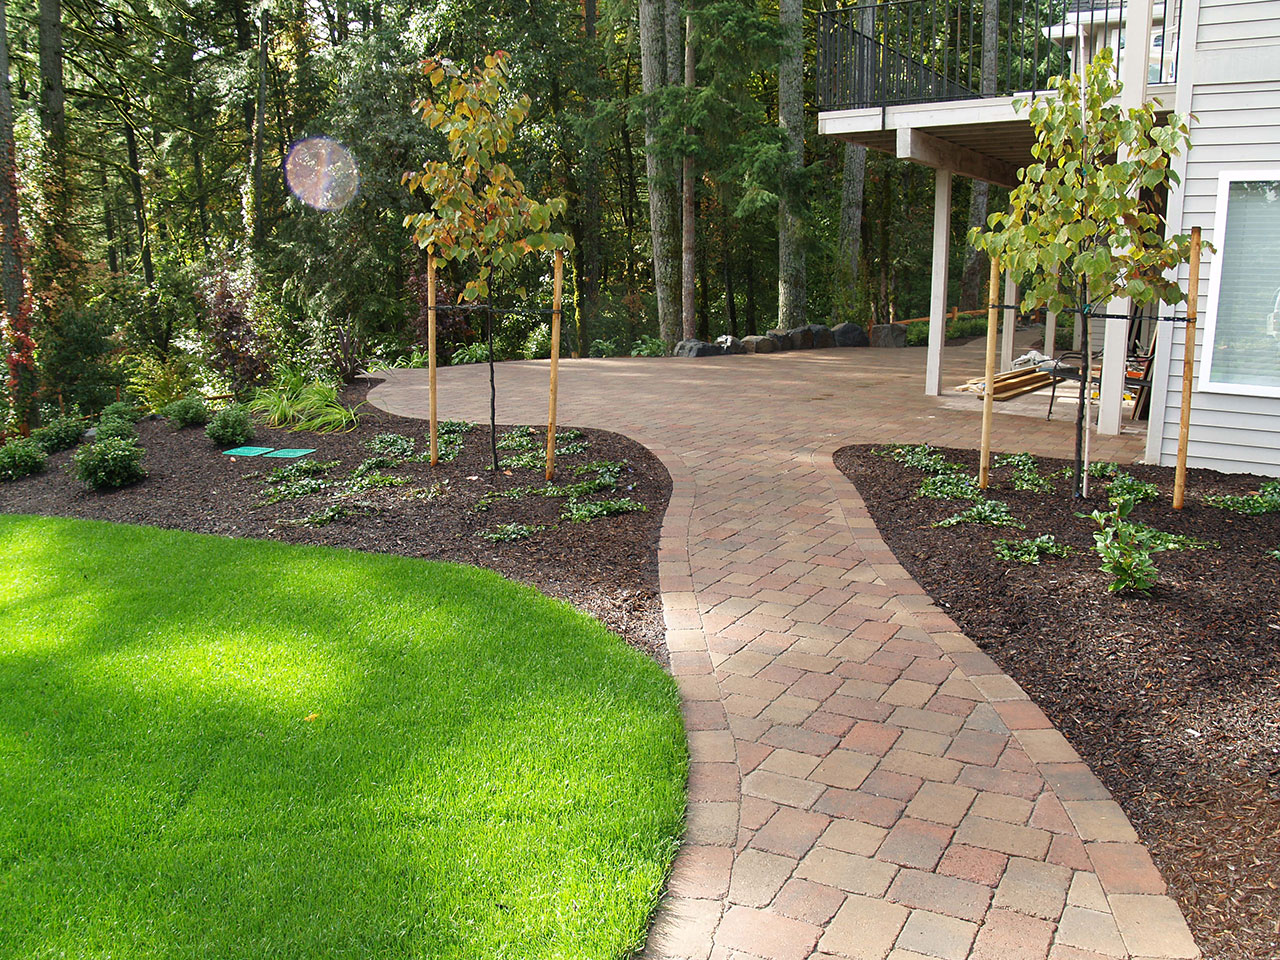 Gallery of residential landscape design ideas for Residential landscape design